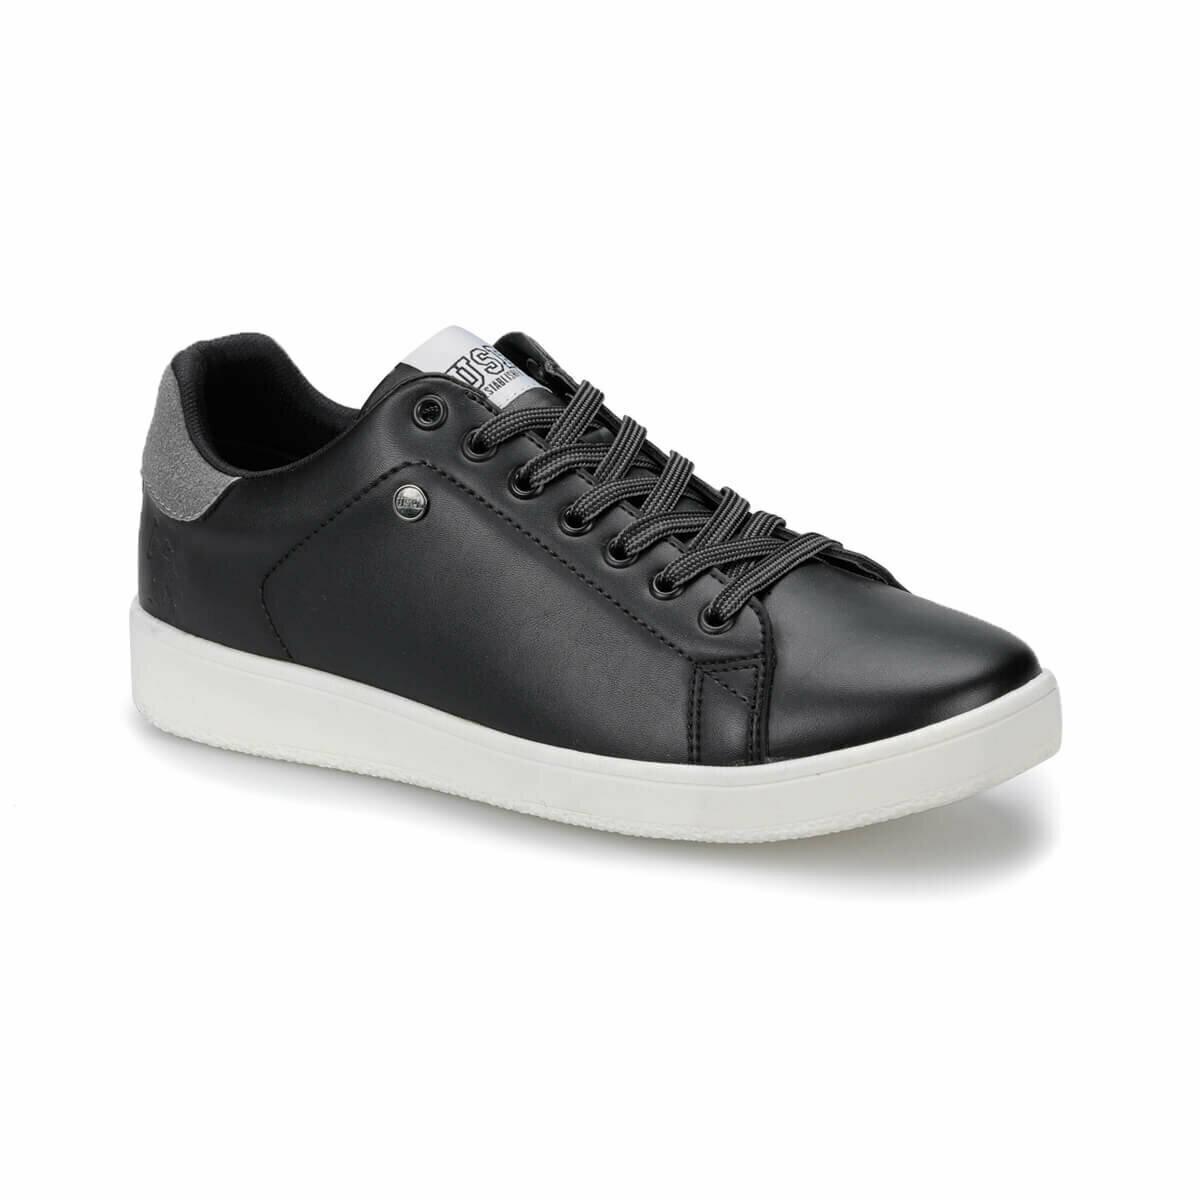 FLO PIZZI Black Men 'S Sneaker Shoes U.S. POLO ASSN.